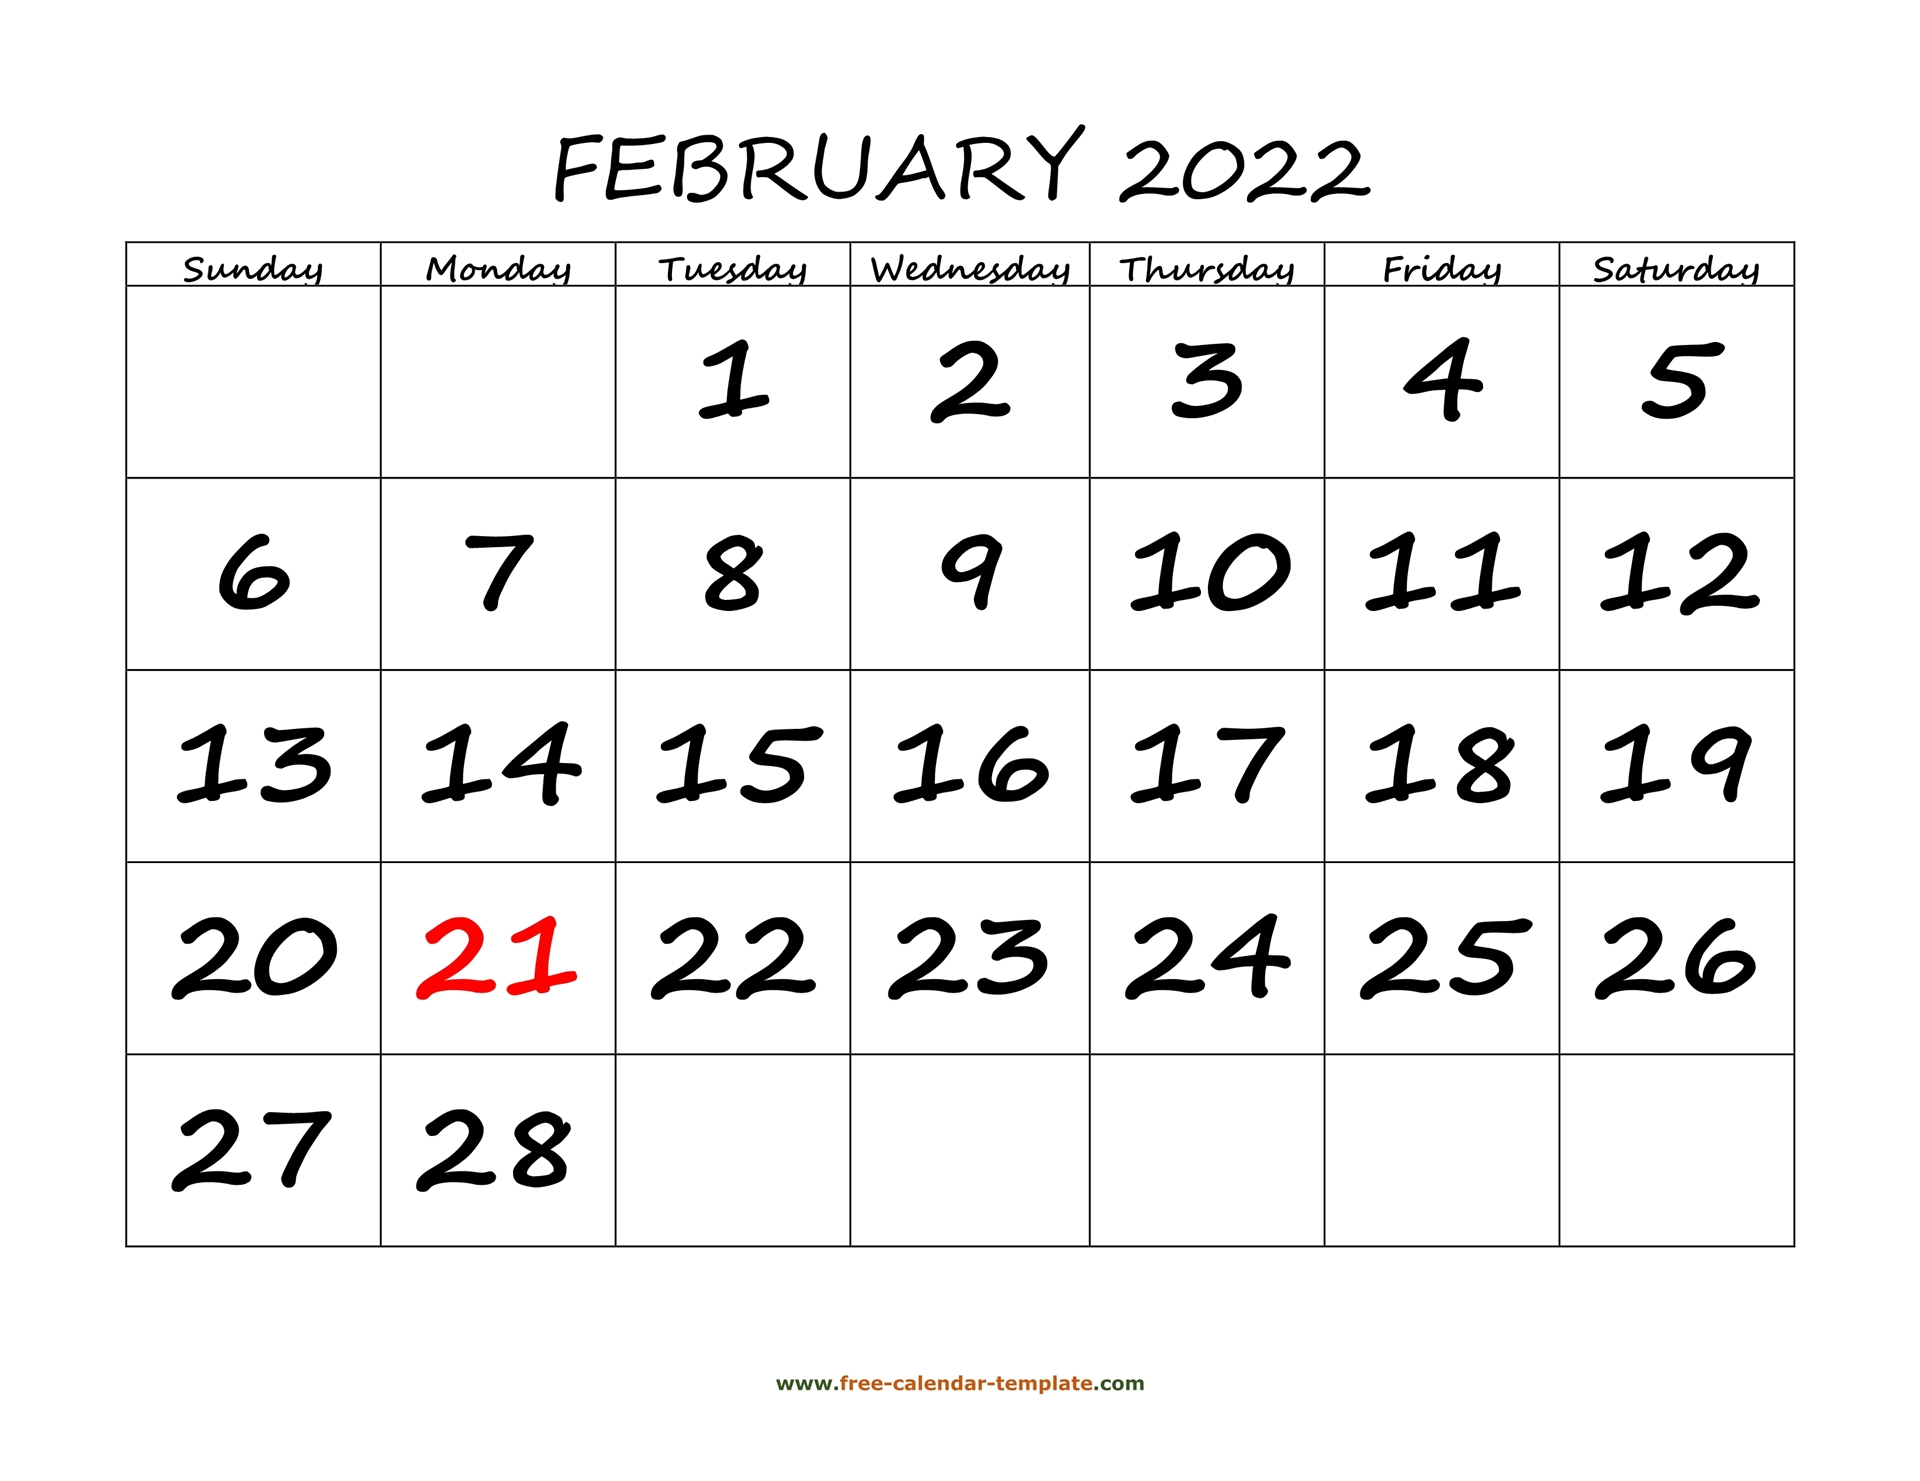 February 2022 Calendar Designed With Large Font With Free Printable Feb 2022 Calendar Templates